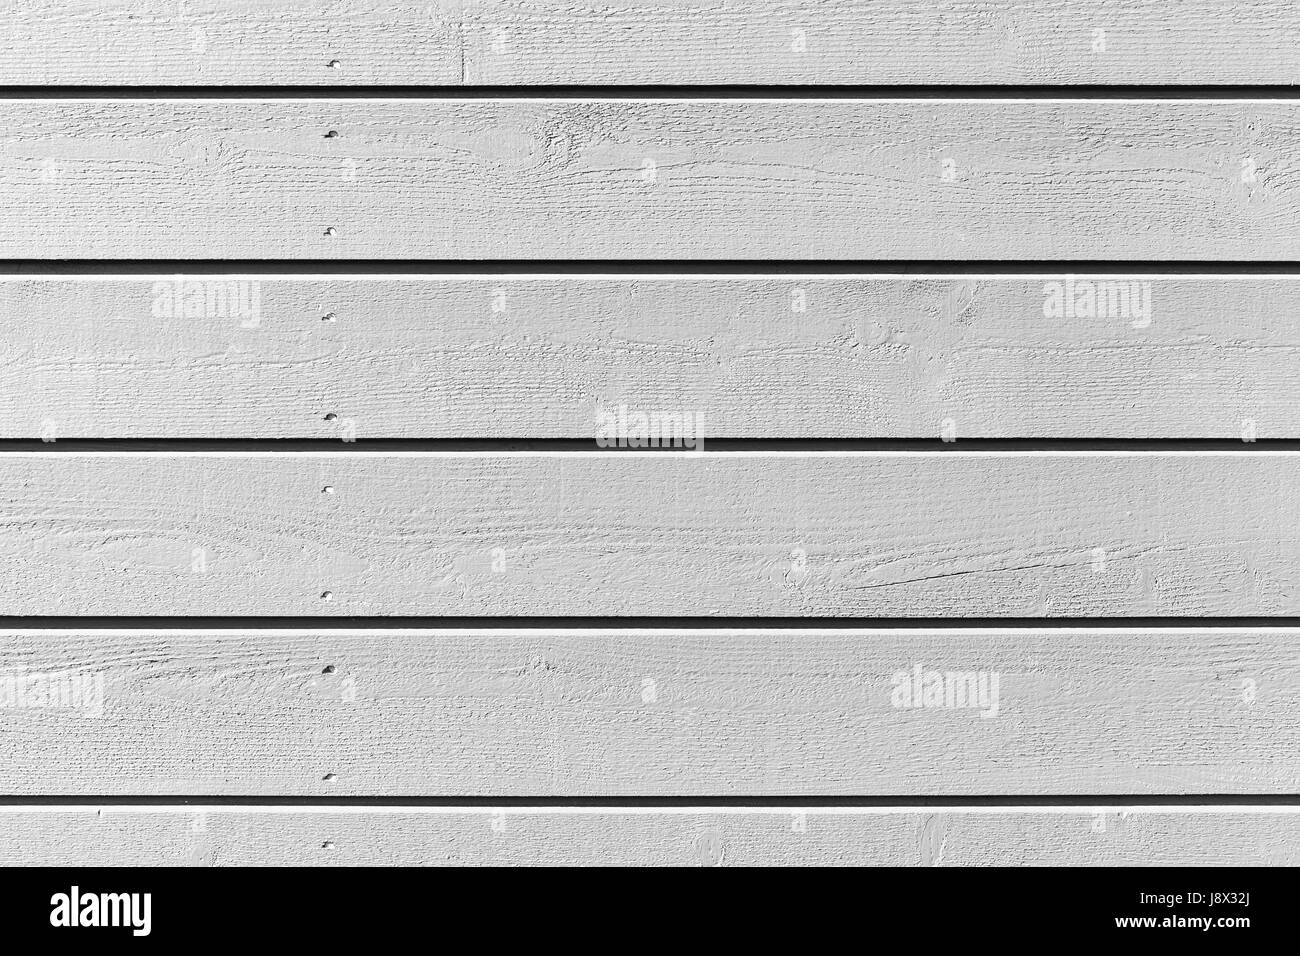 Natural white wooden wall made of planks with nails, background photo texture - Stock Image